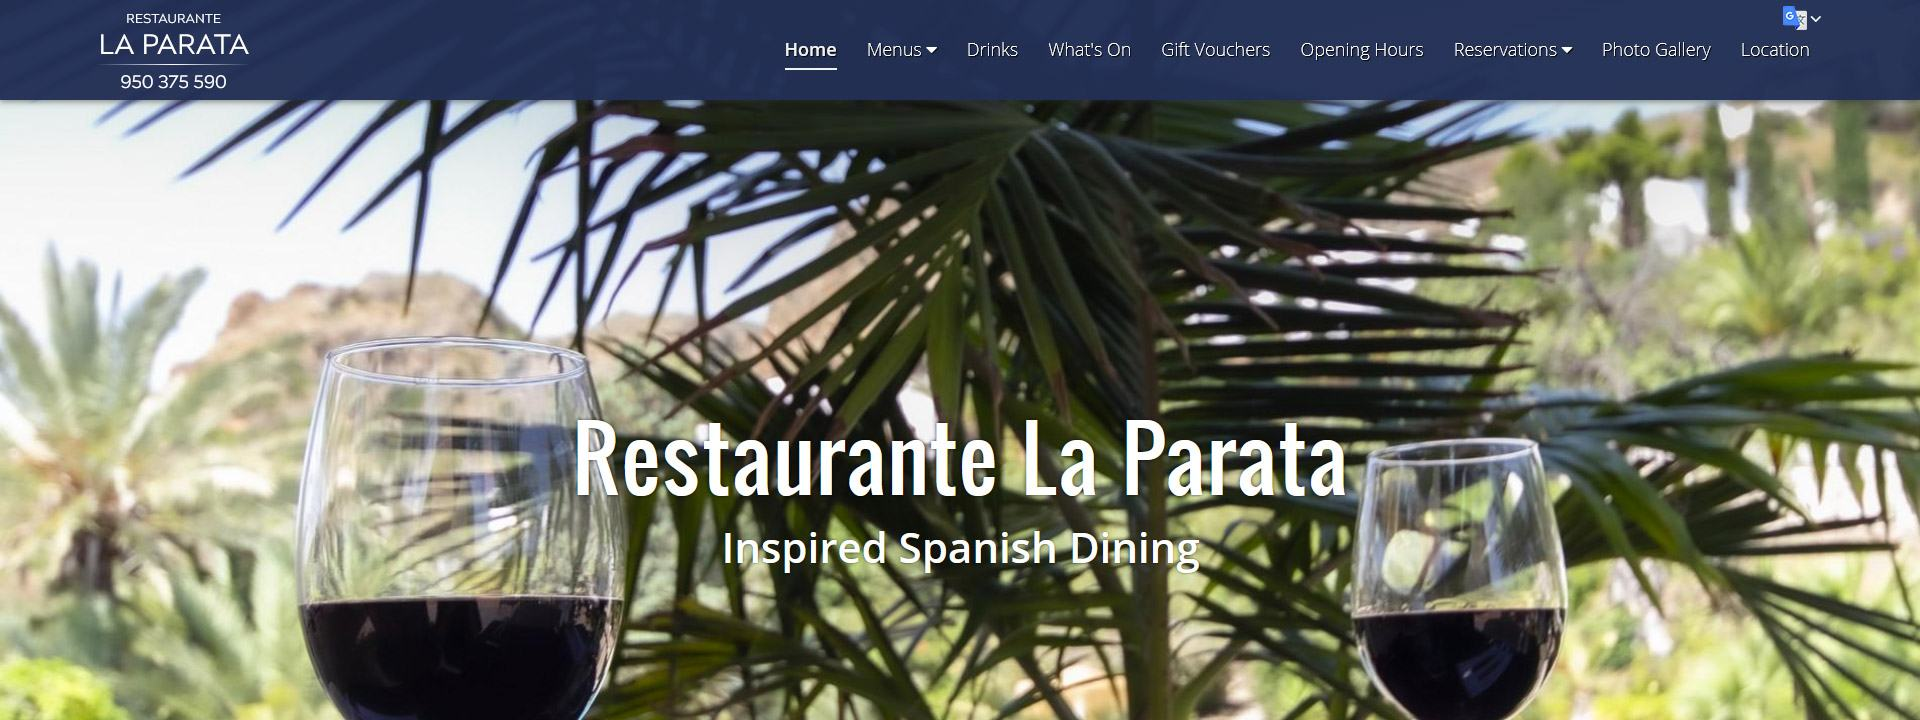 Bars and Restaurants Websites